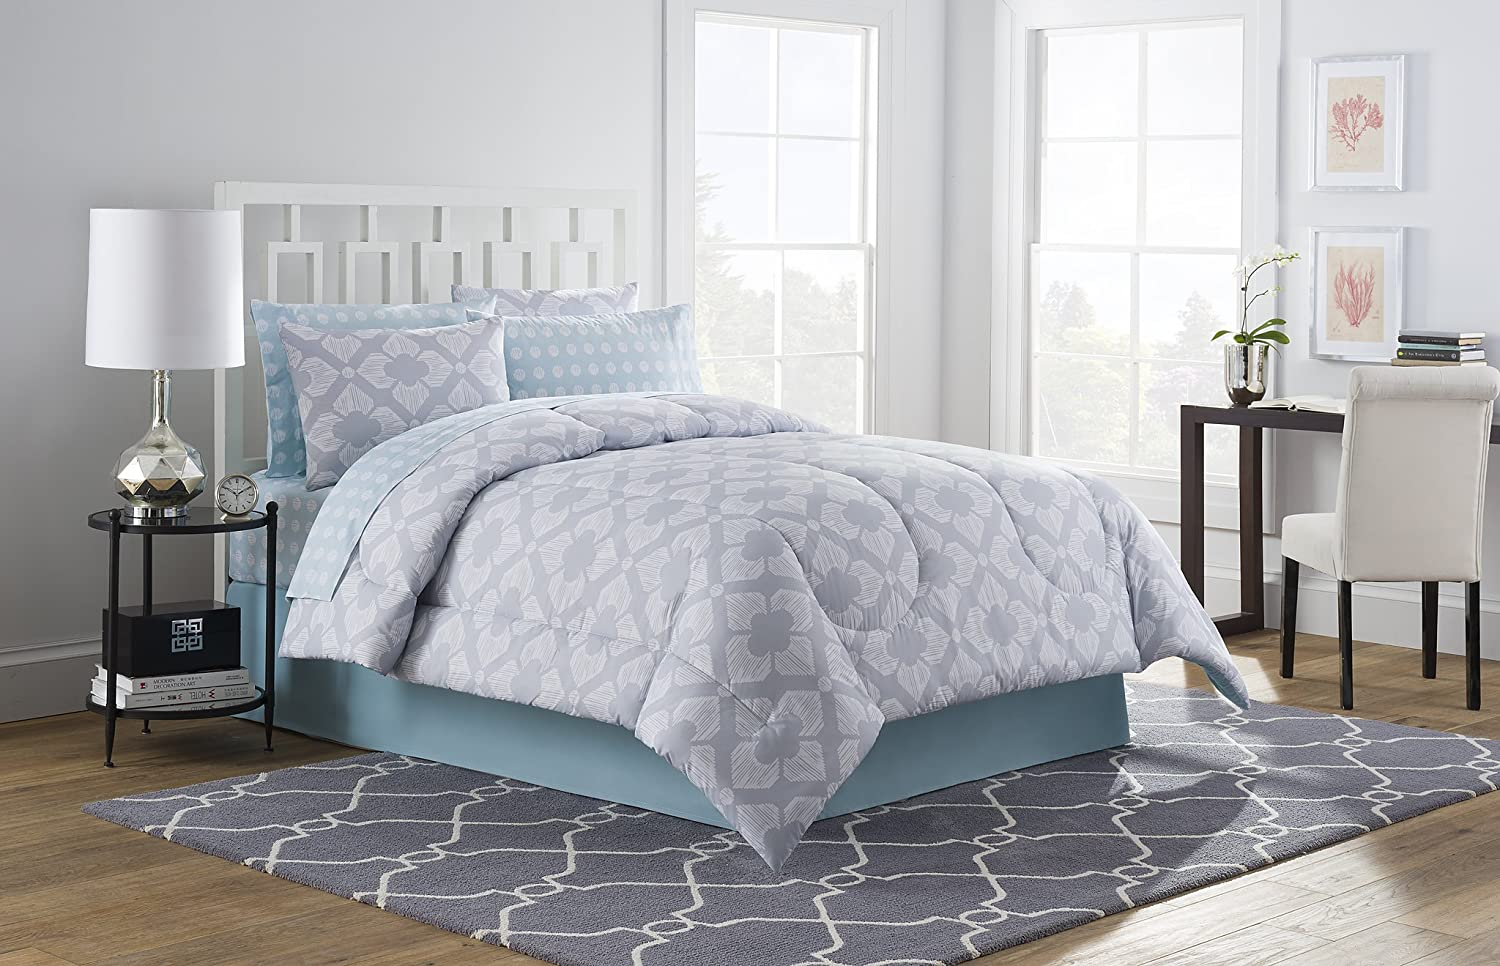 Style Decor OZ1020S51LBL Twin XL Chandra 6Piece Bed-in-a-Bag Comforter Set, Blue, Twin X-Large